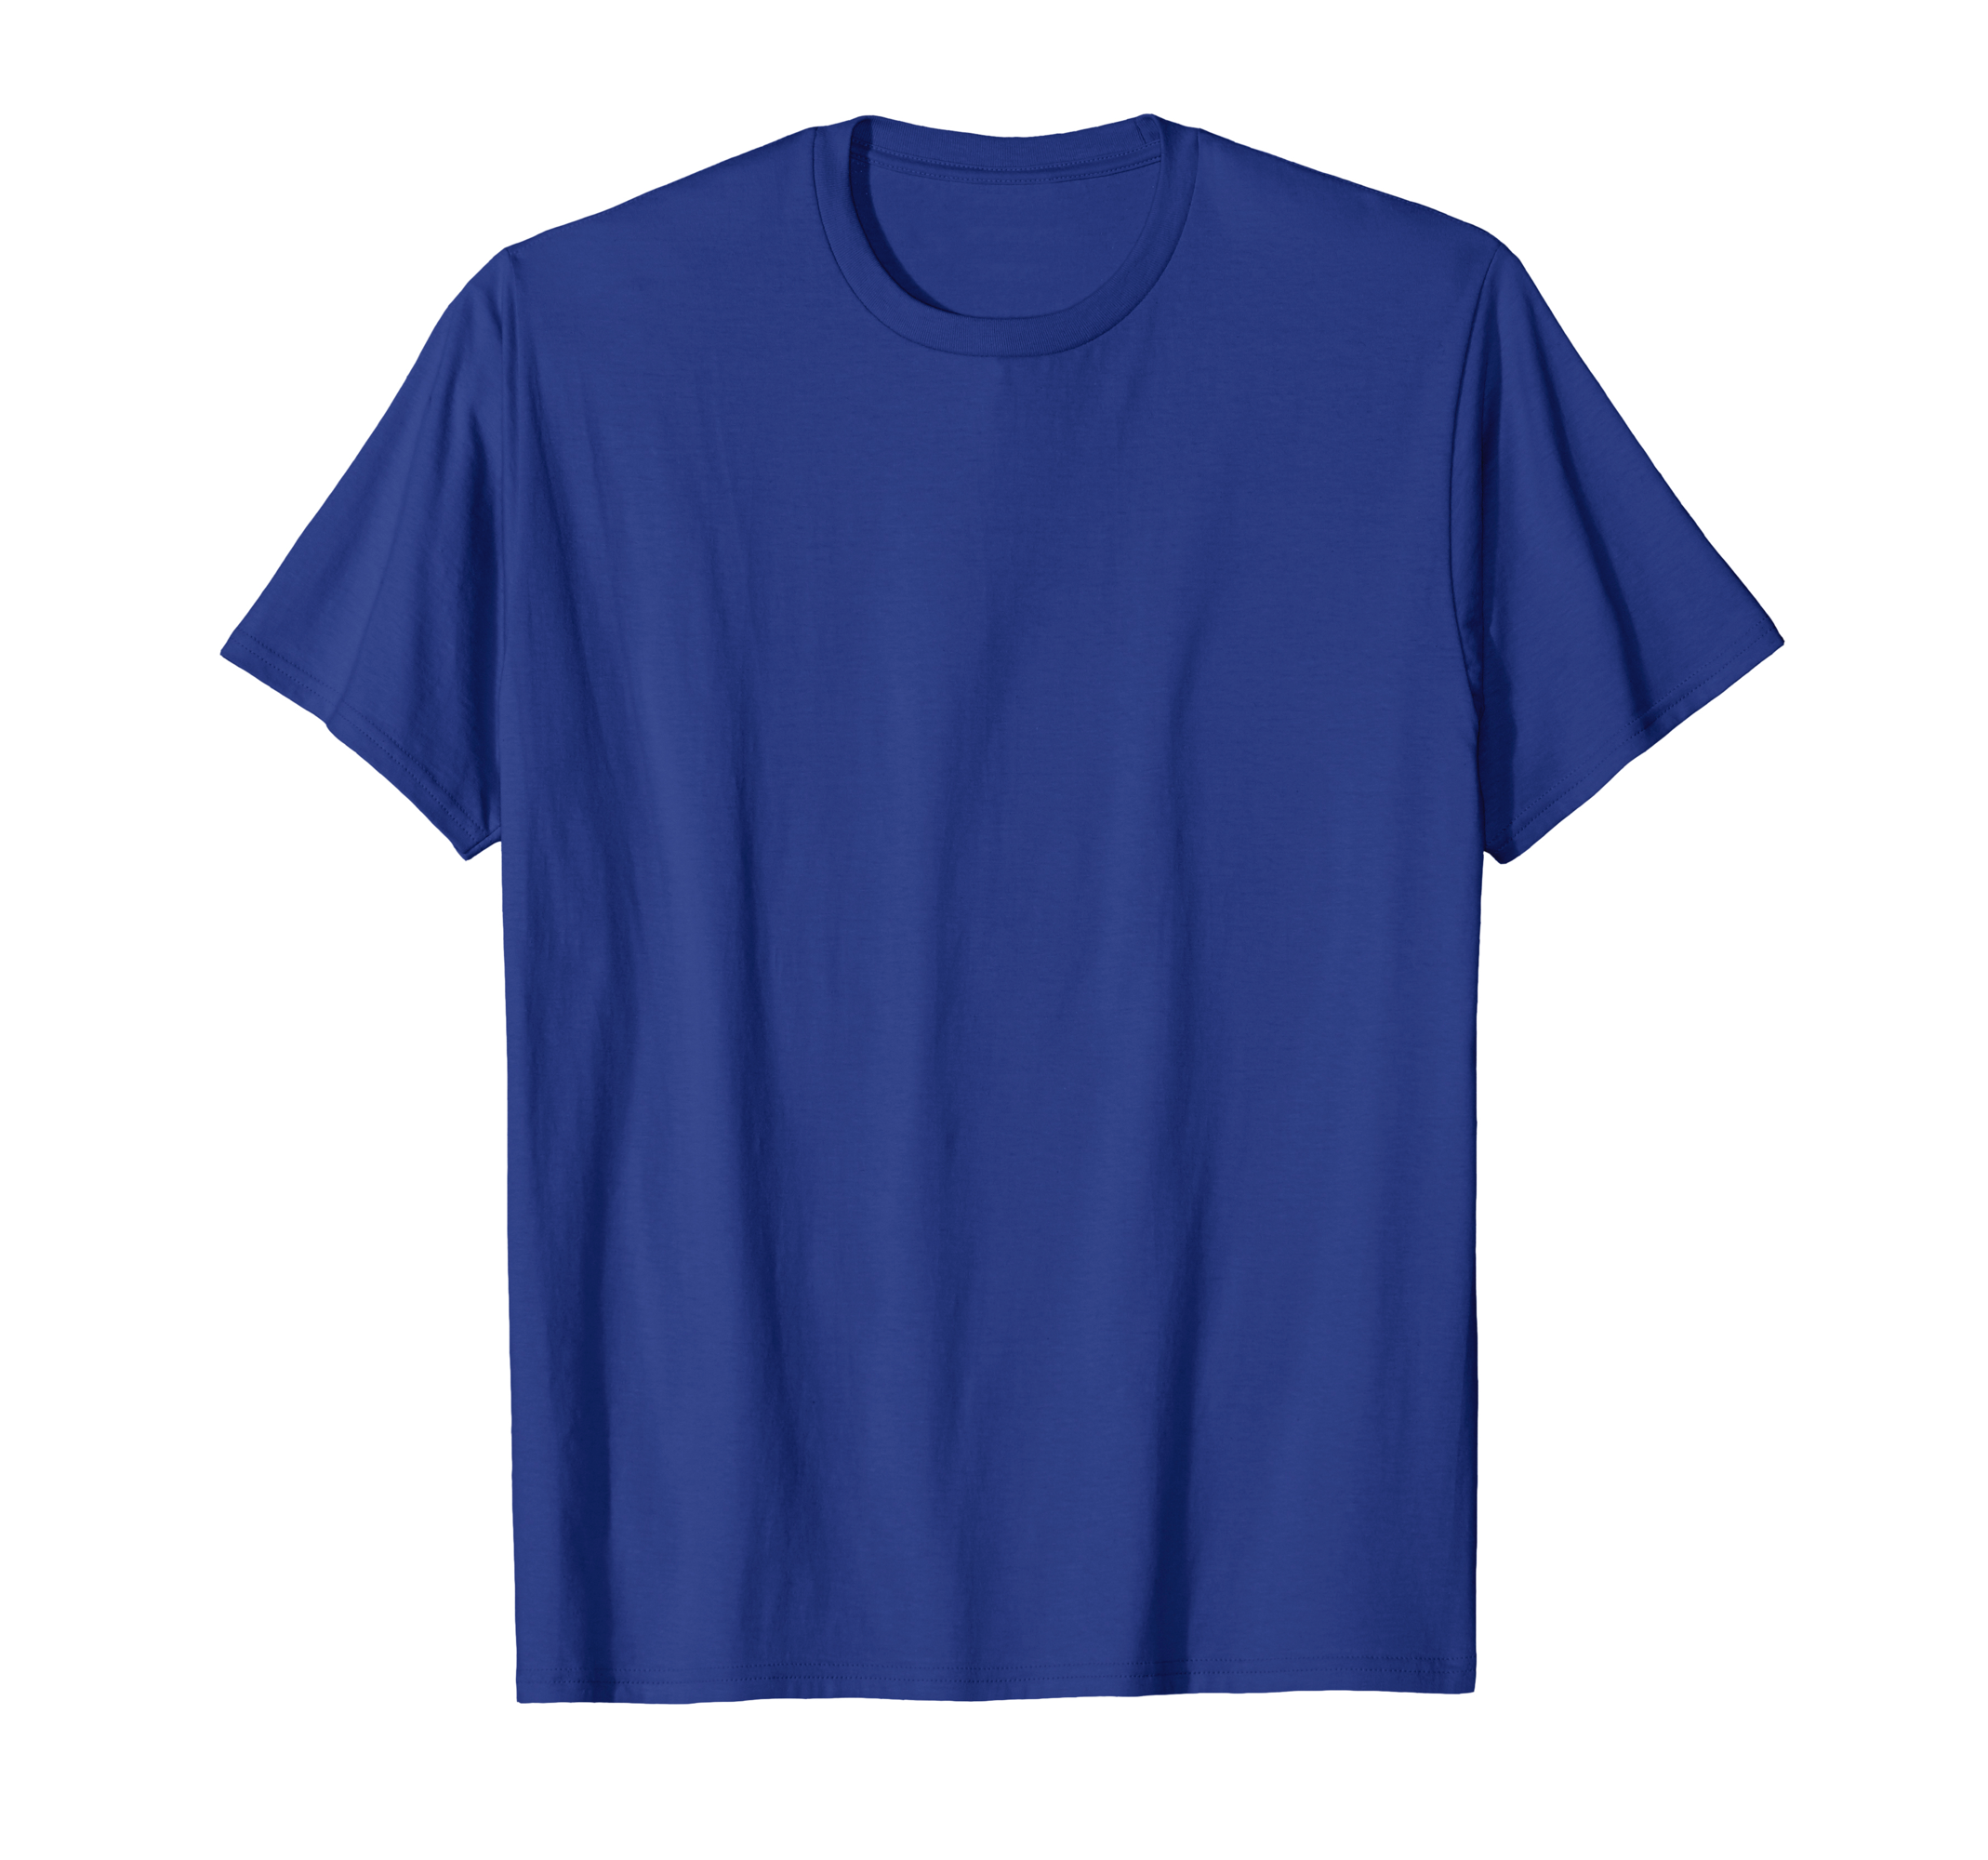 Fathers Day Gift Ideas For 2020 Amazon.com: Proud New Poppop Est 2020 Shirt Father's Day Gift For